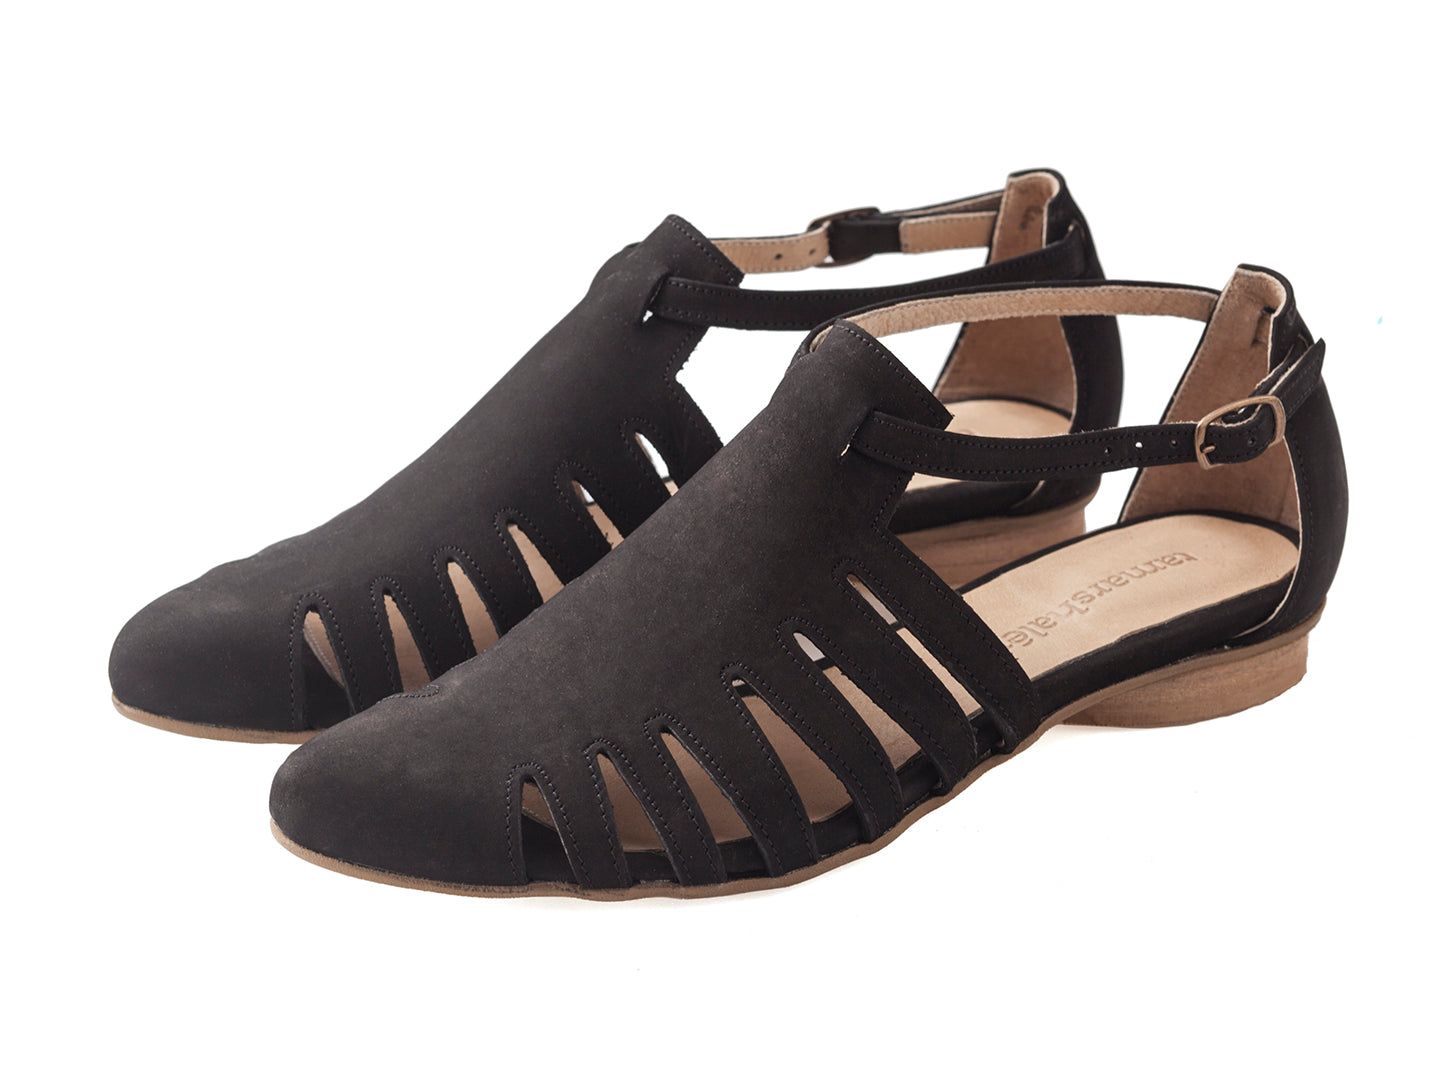 Alice sandals in Black